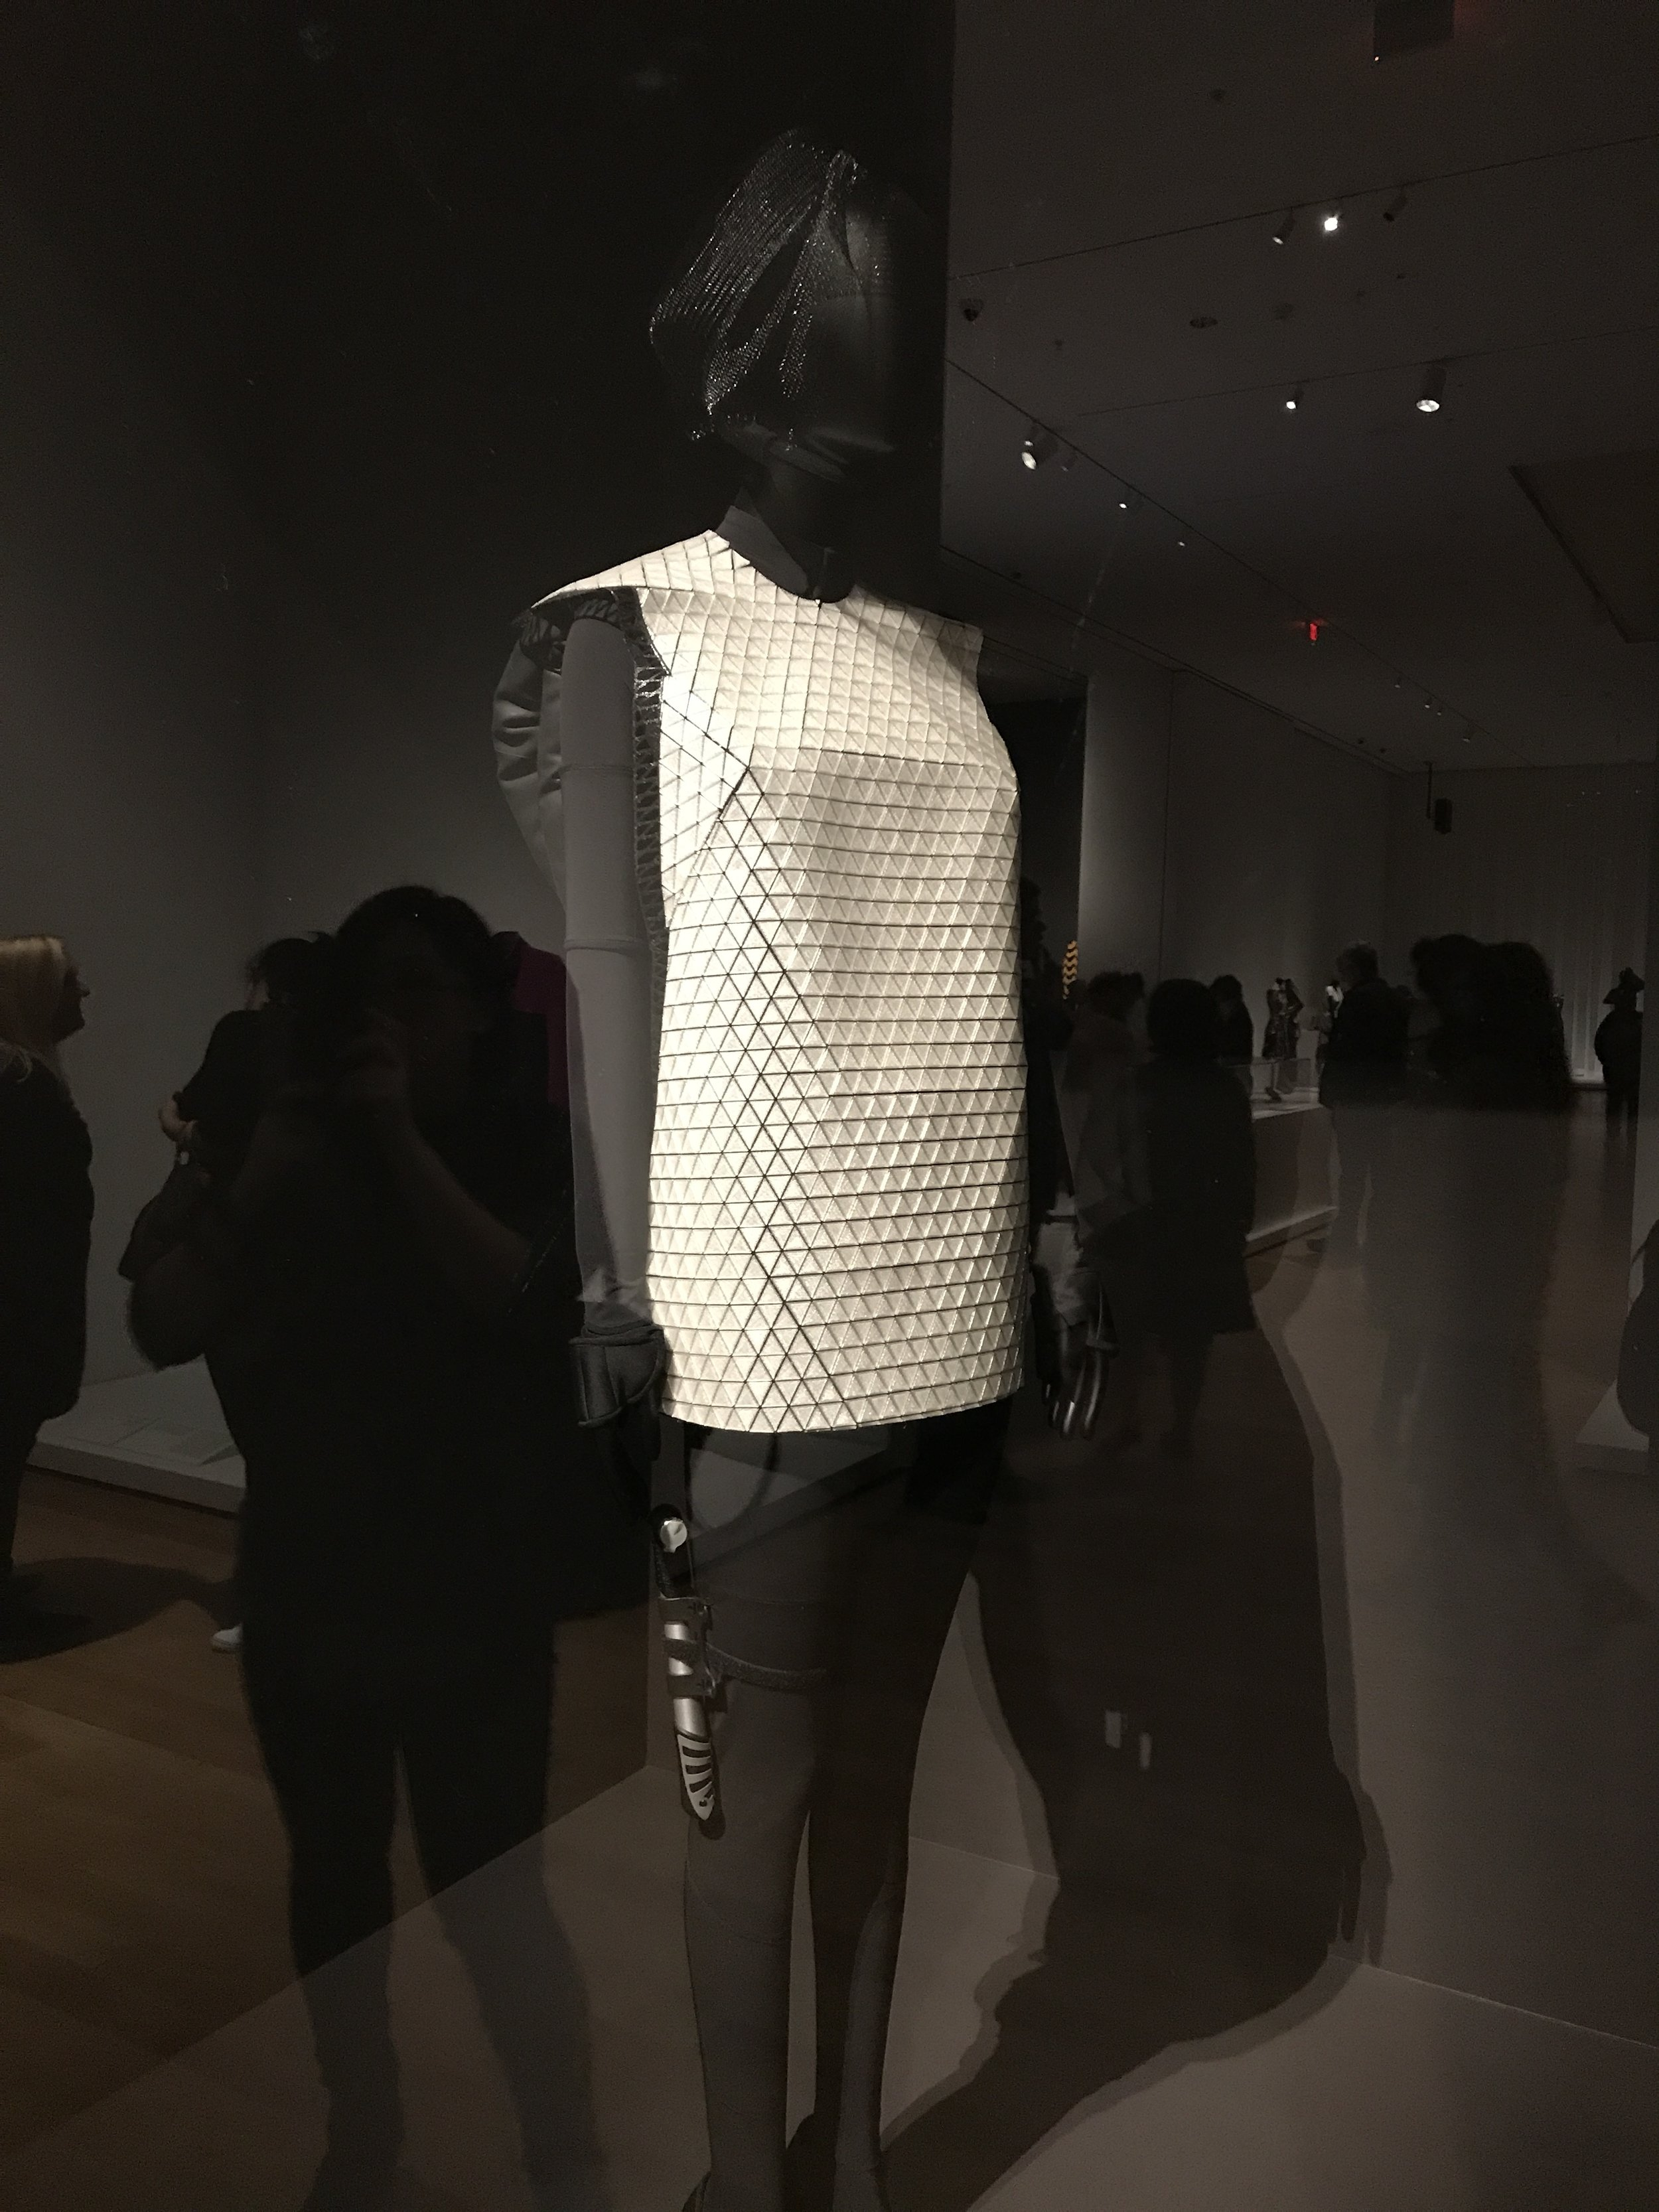 Printed for Pyer Moss 'The Future' Of Fashion' exhibit at MOMA